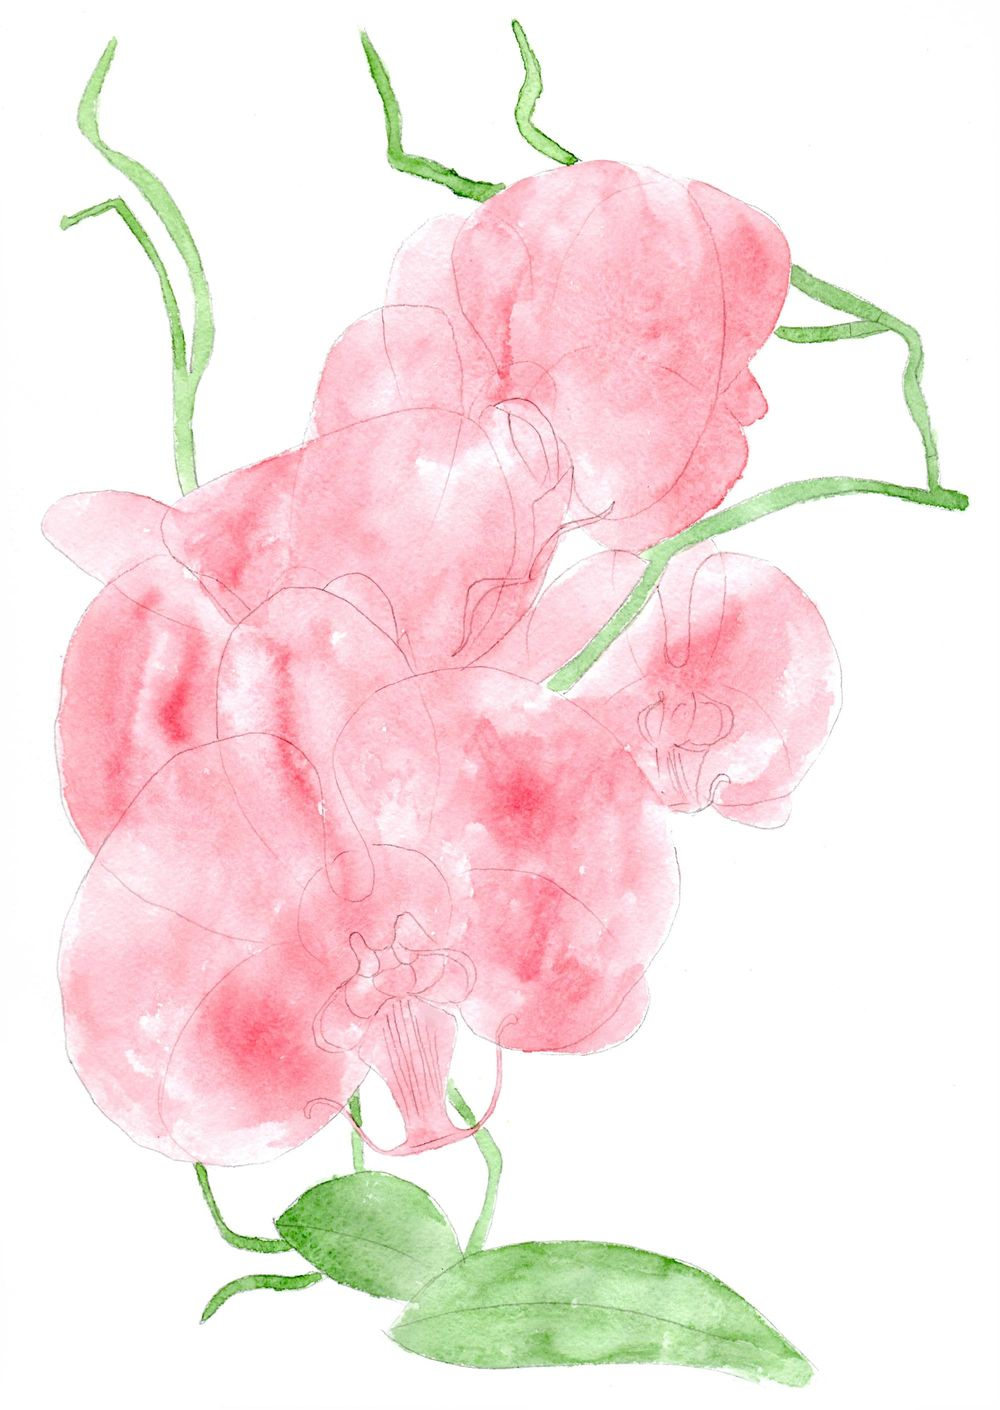 Orchids, watercolor painting - image 4 - student project